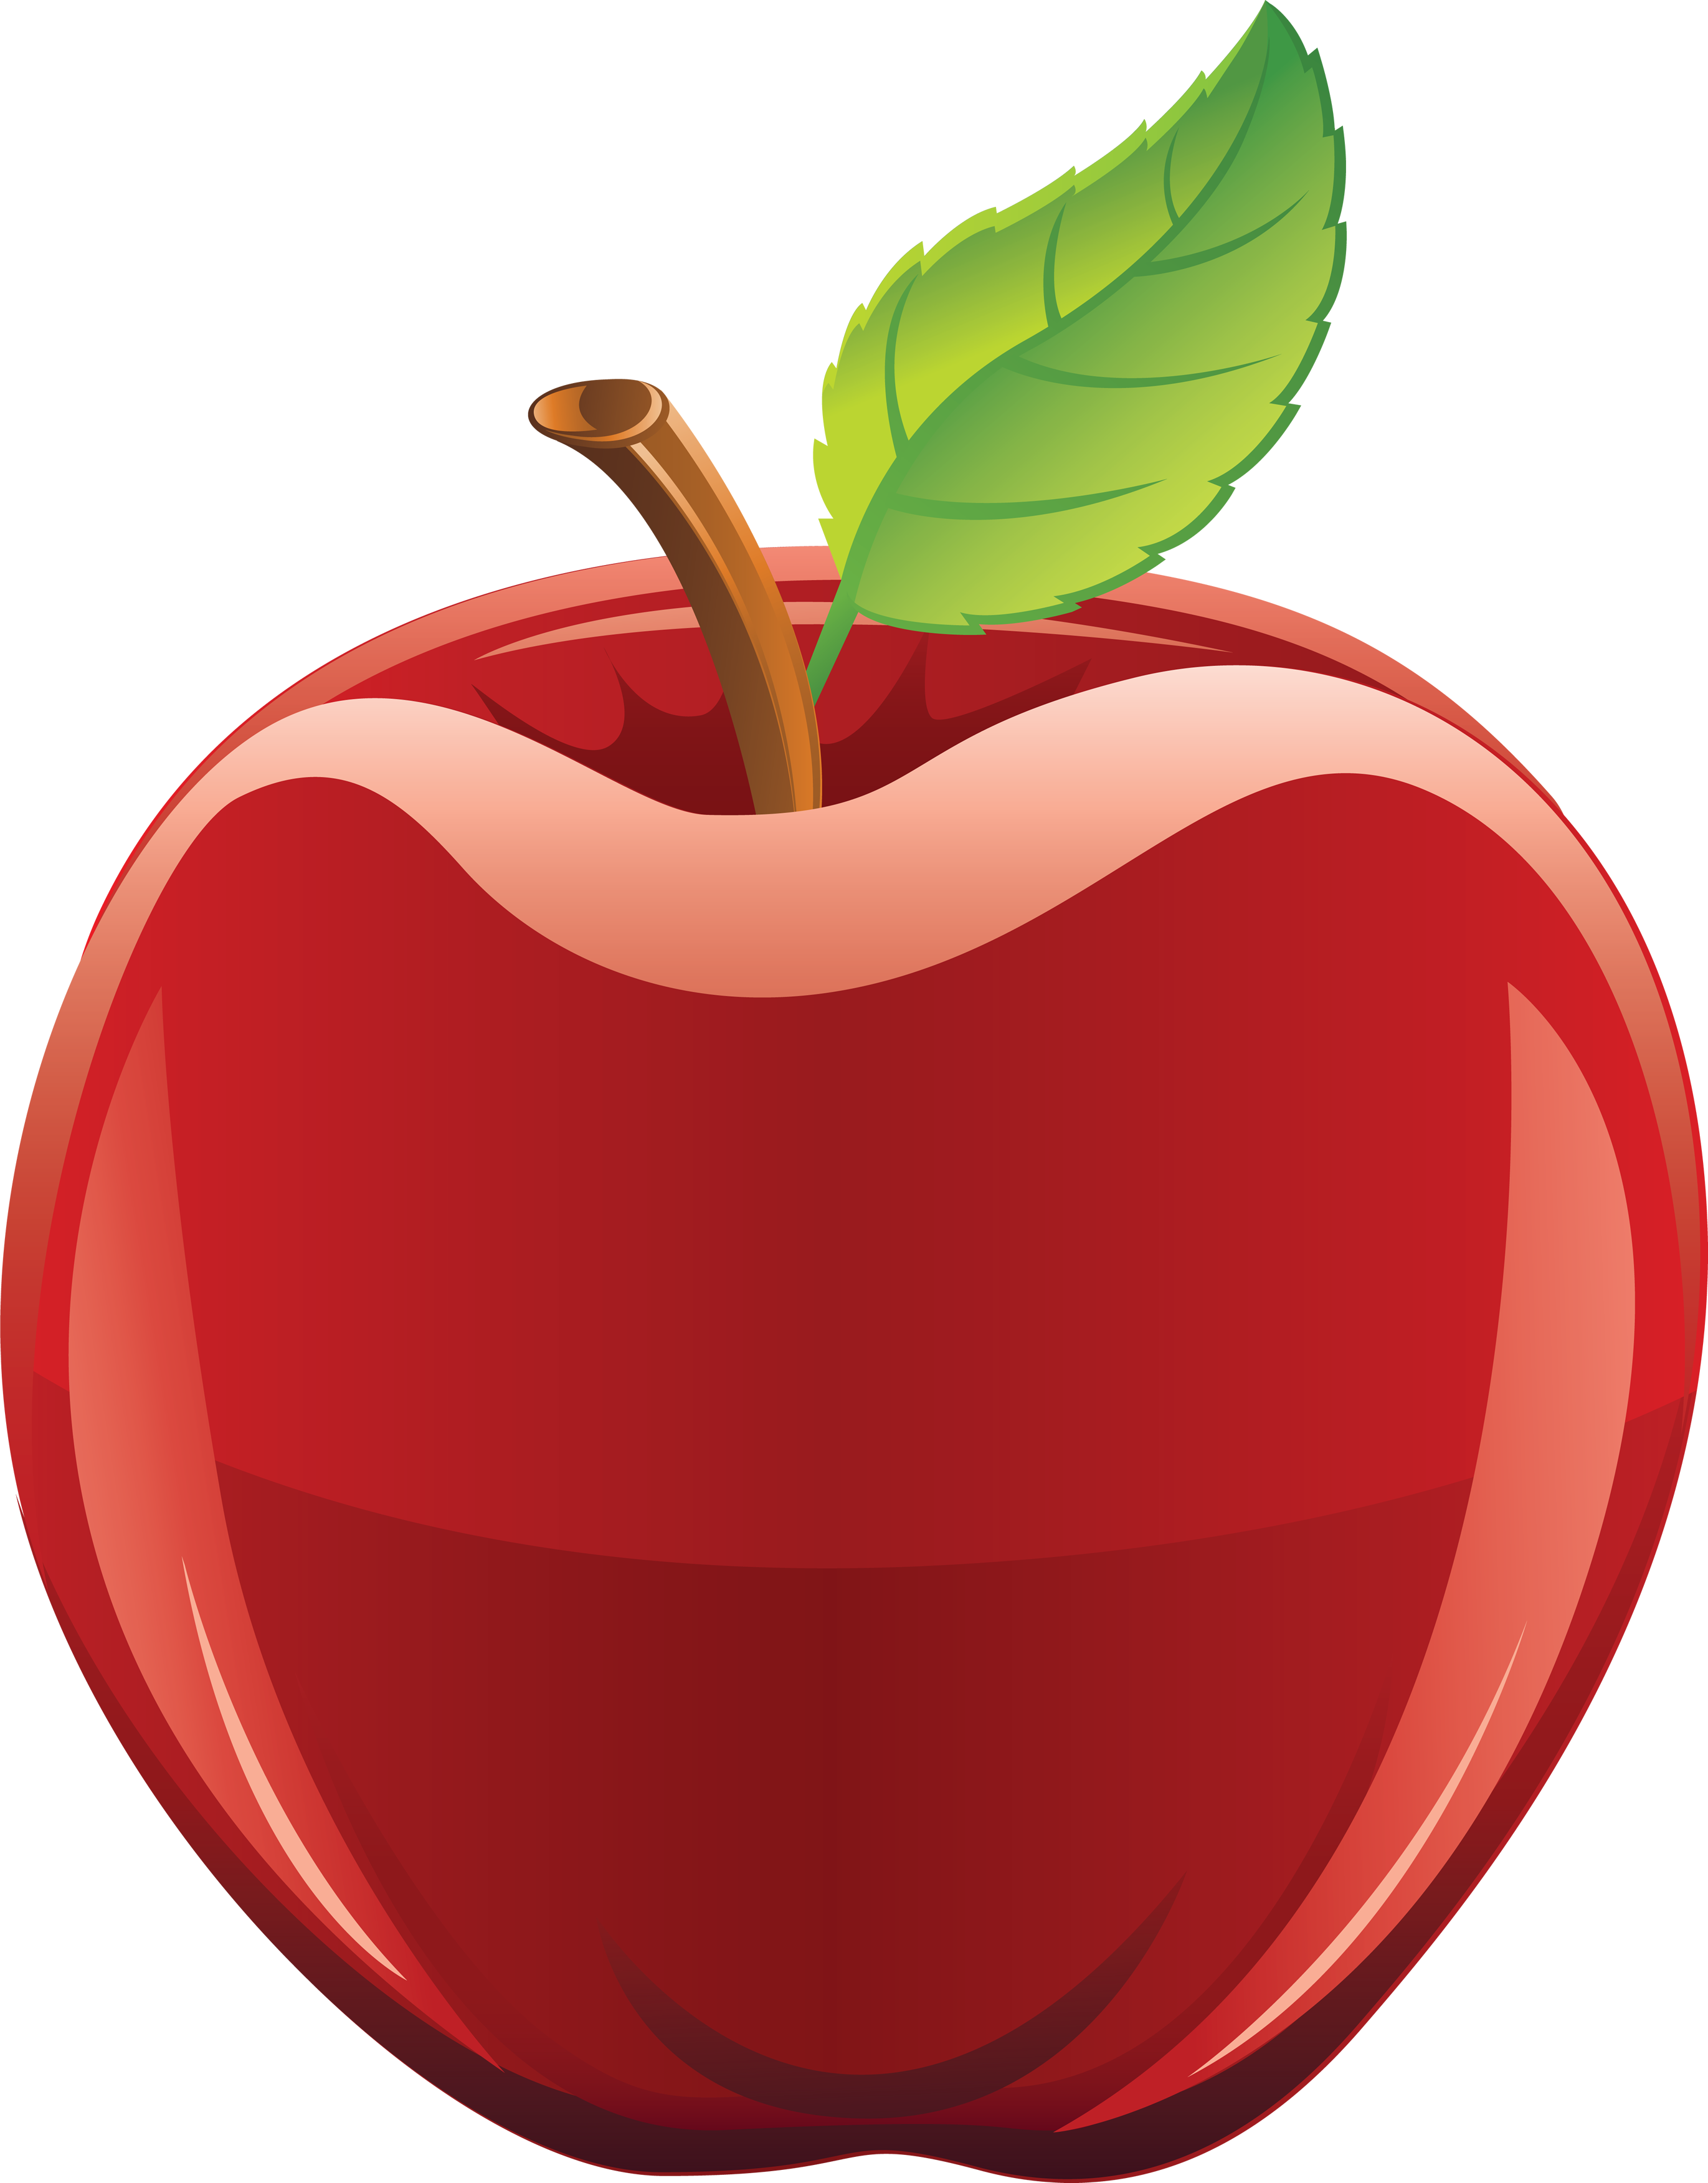 Images Of Apples - ClipArt Best